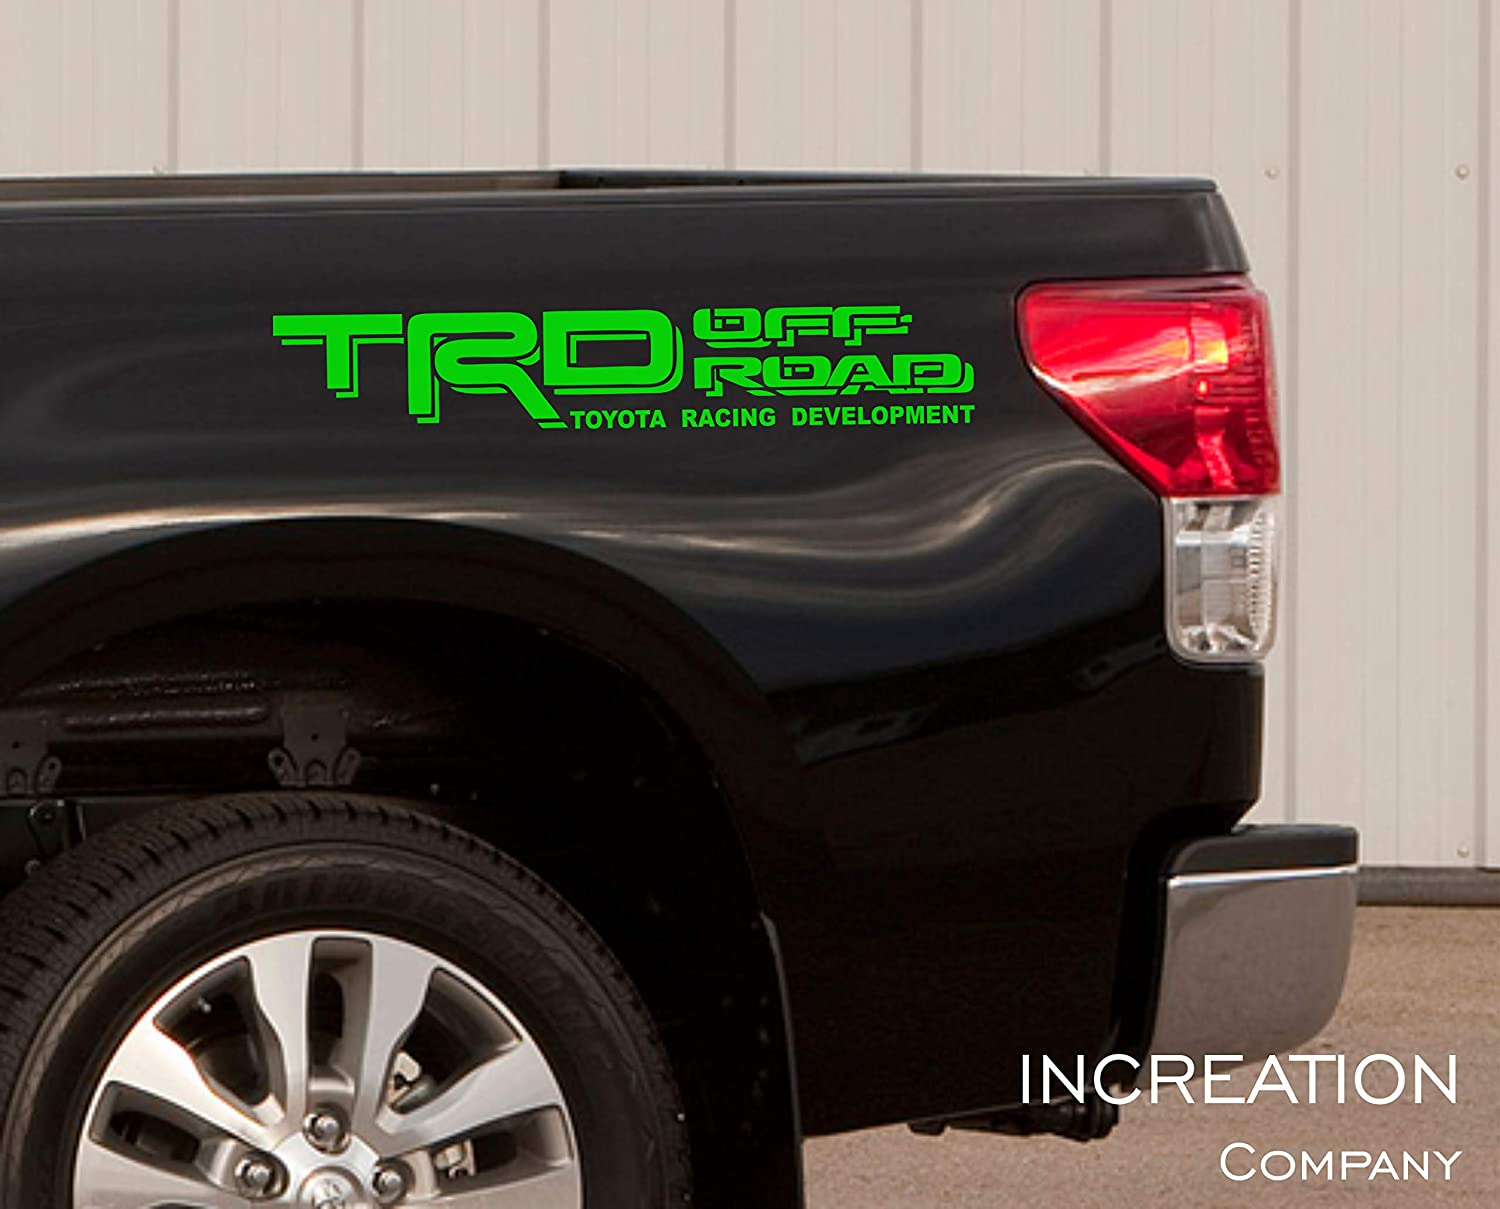 Increation company toyota tundra tacoma truck body side bed decal x2 silver vinyl stickers trd off road 4x4 custom auto graphics racing development